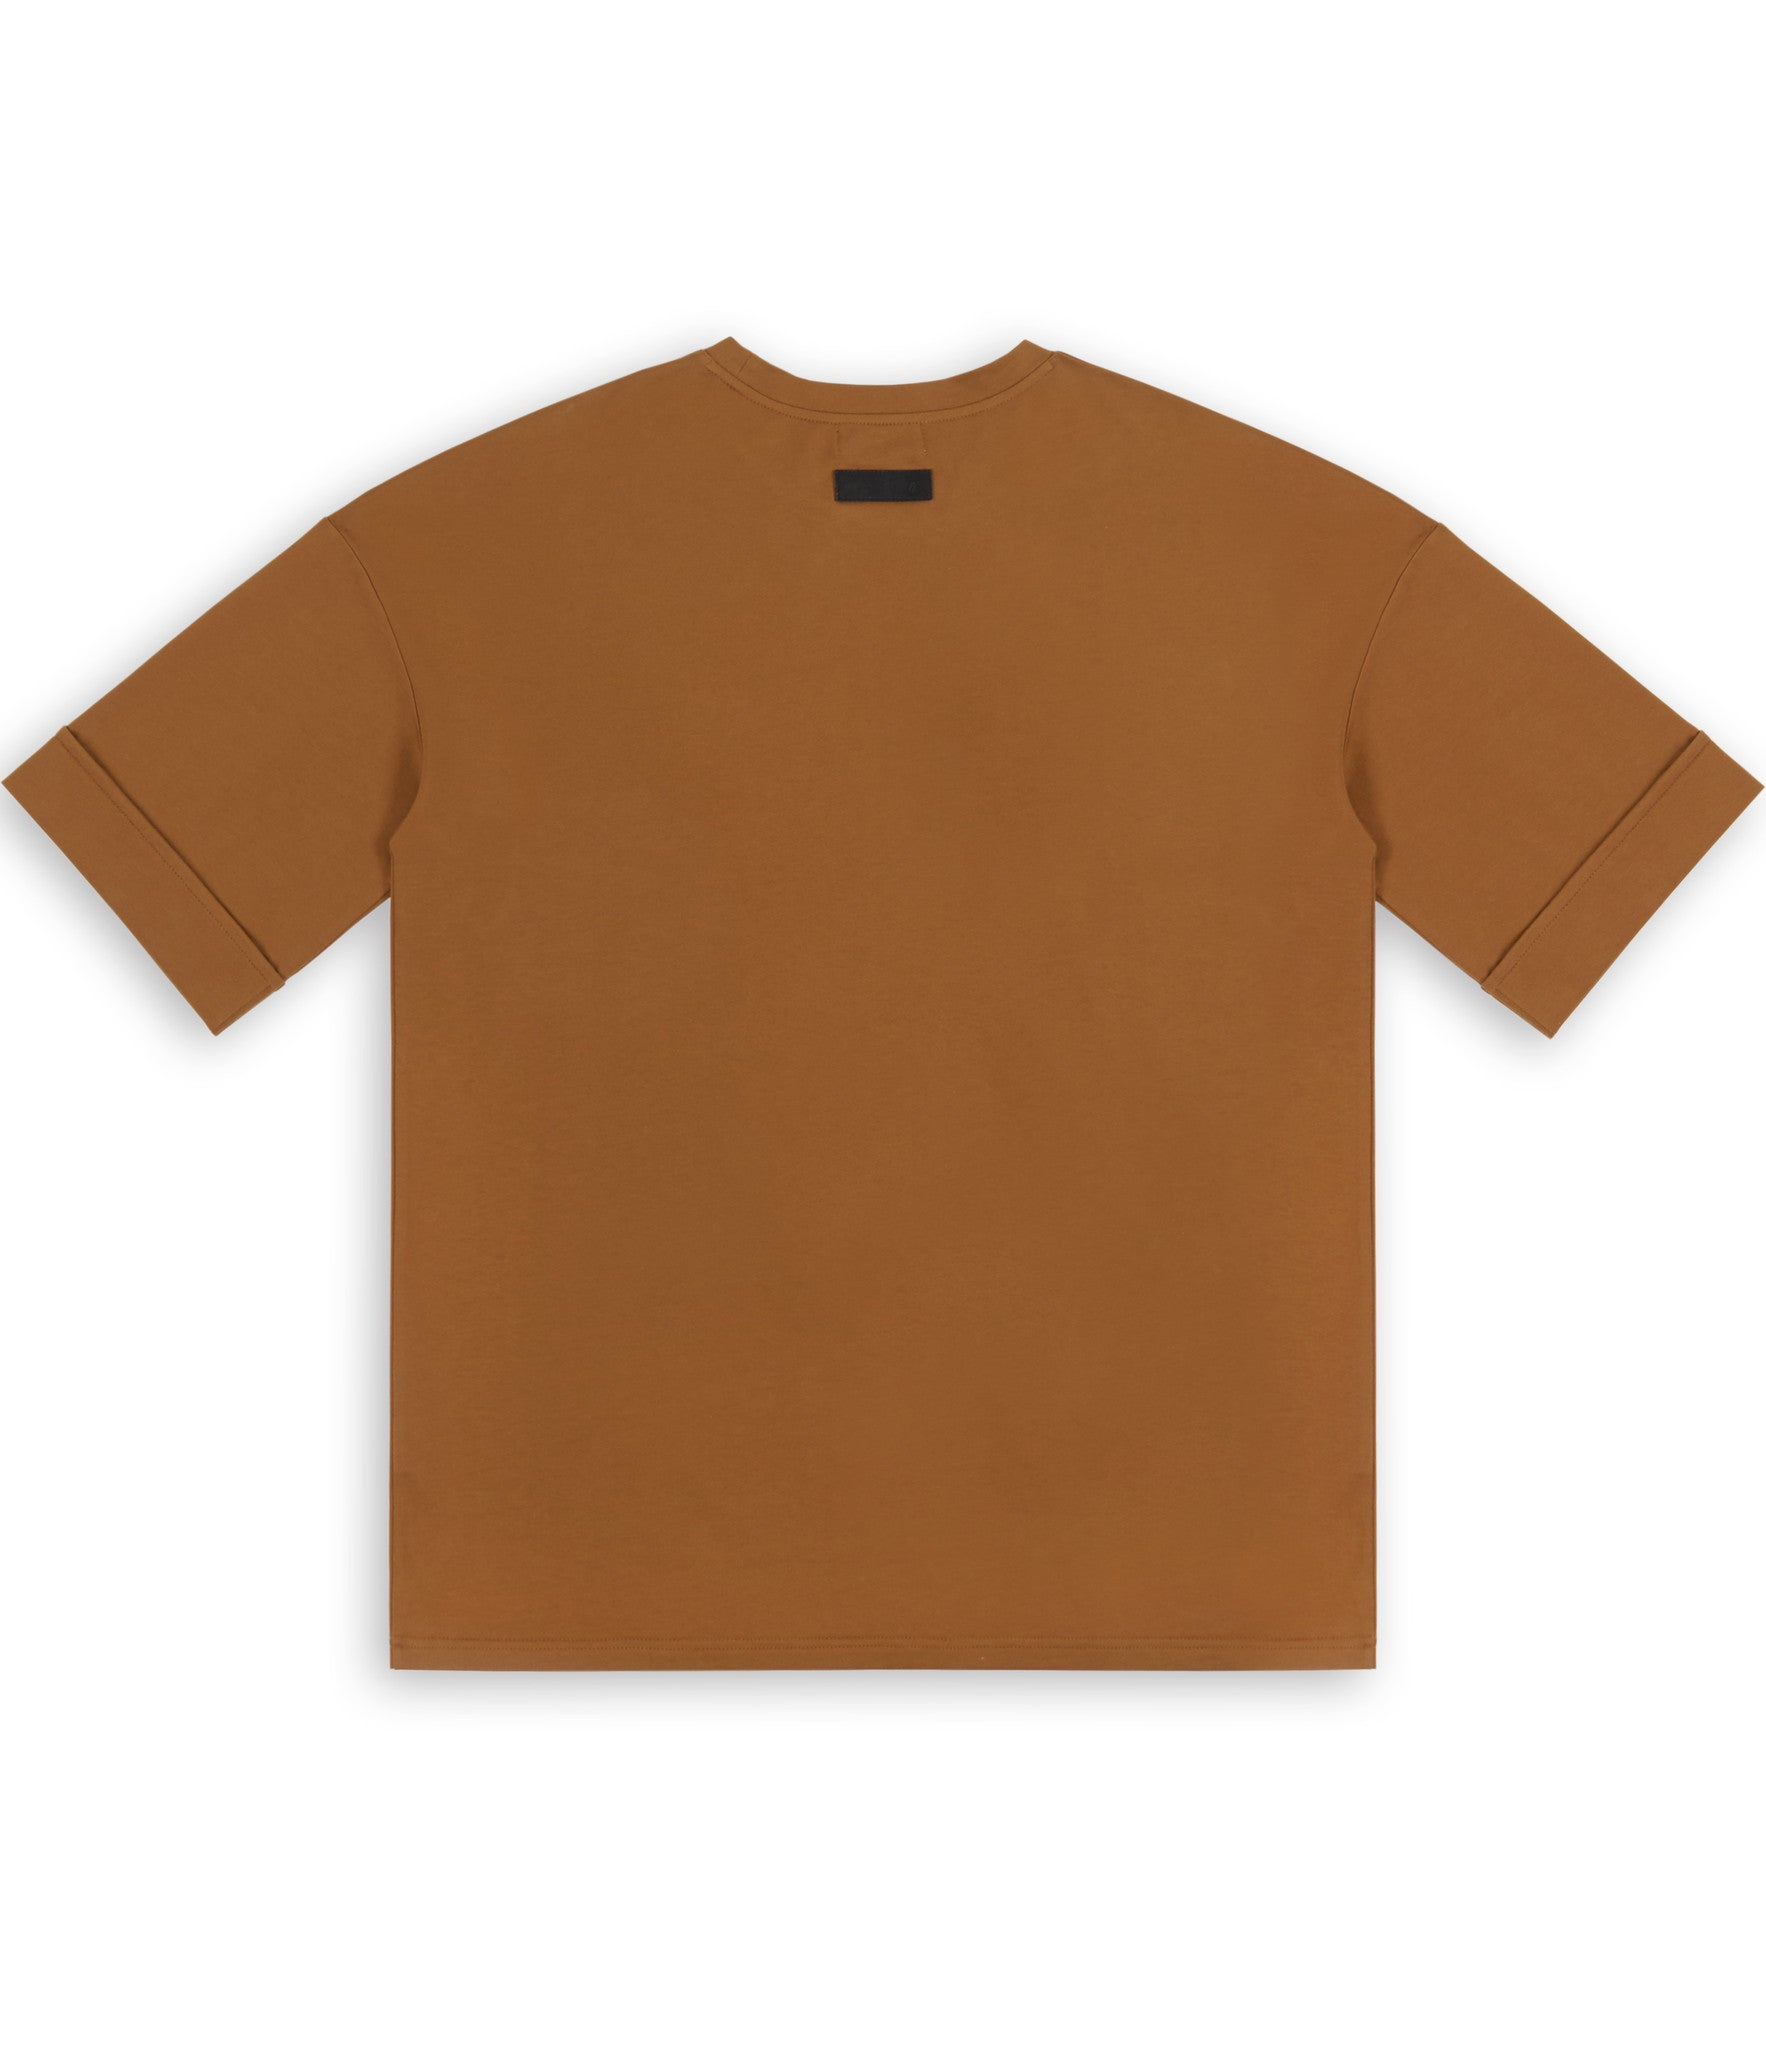 TS271 Oversized Tee - Cognac - underated london - underatedco - 4